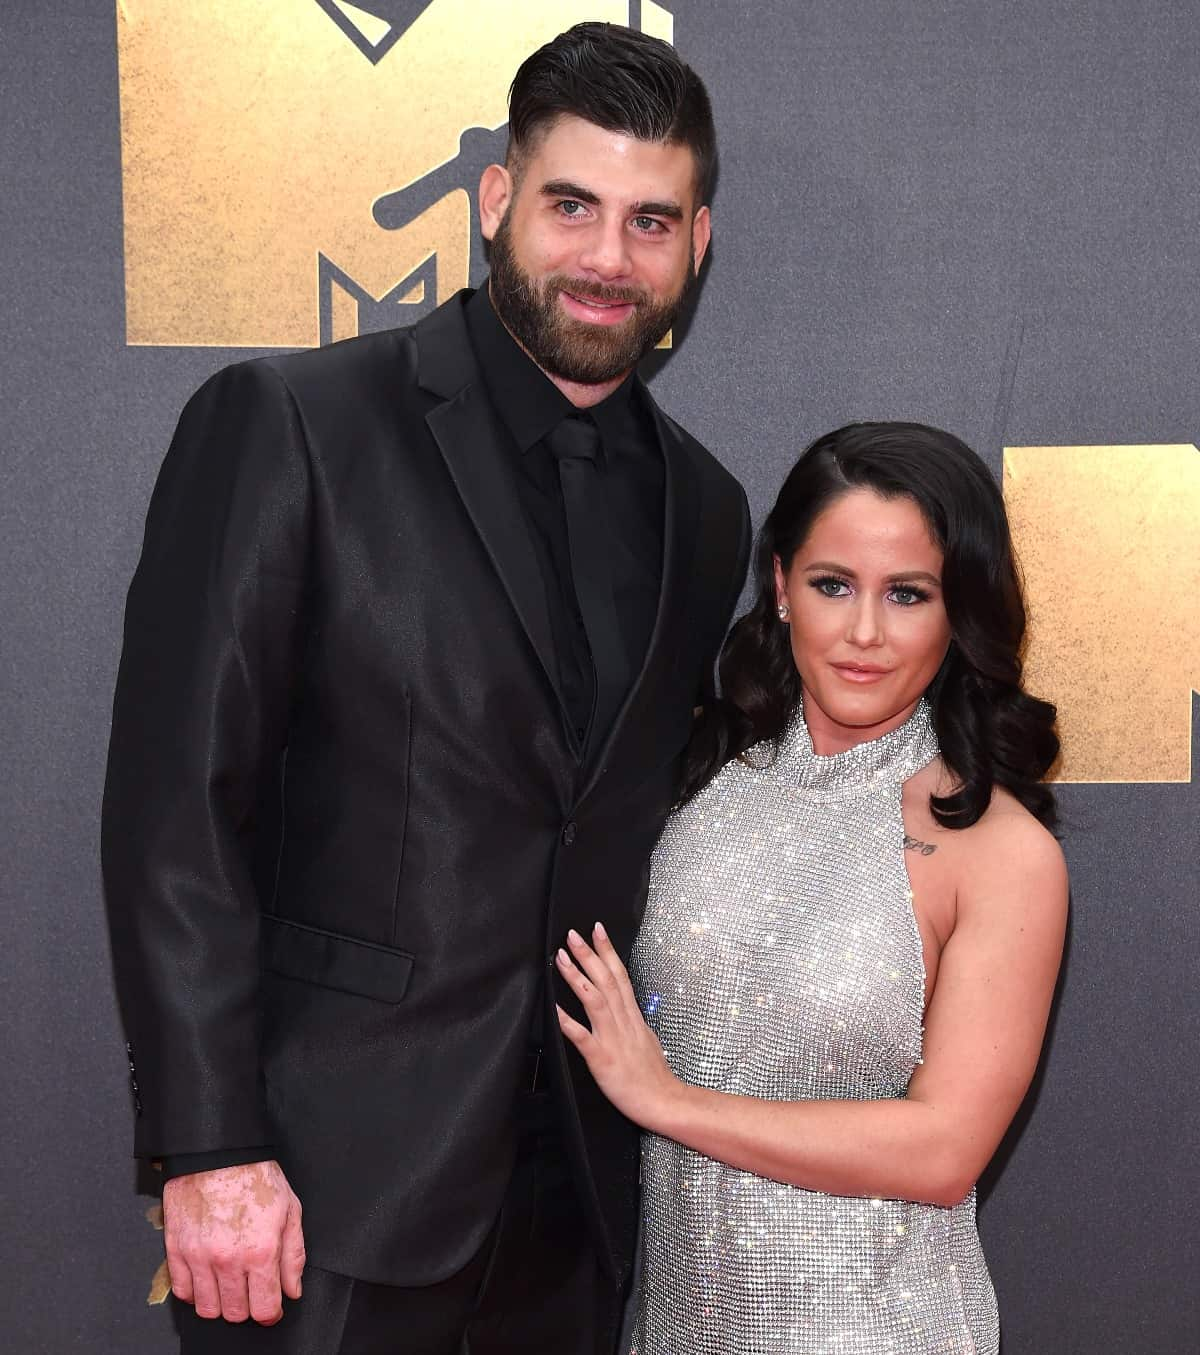 Teen Mom 2 Jenelle Evans Accuses Husband David Eason of Cracking Collabone in 911 Call